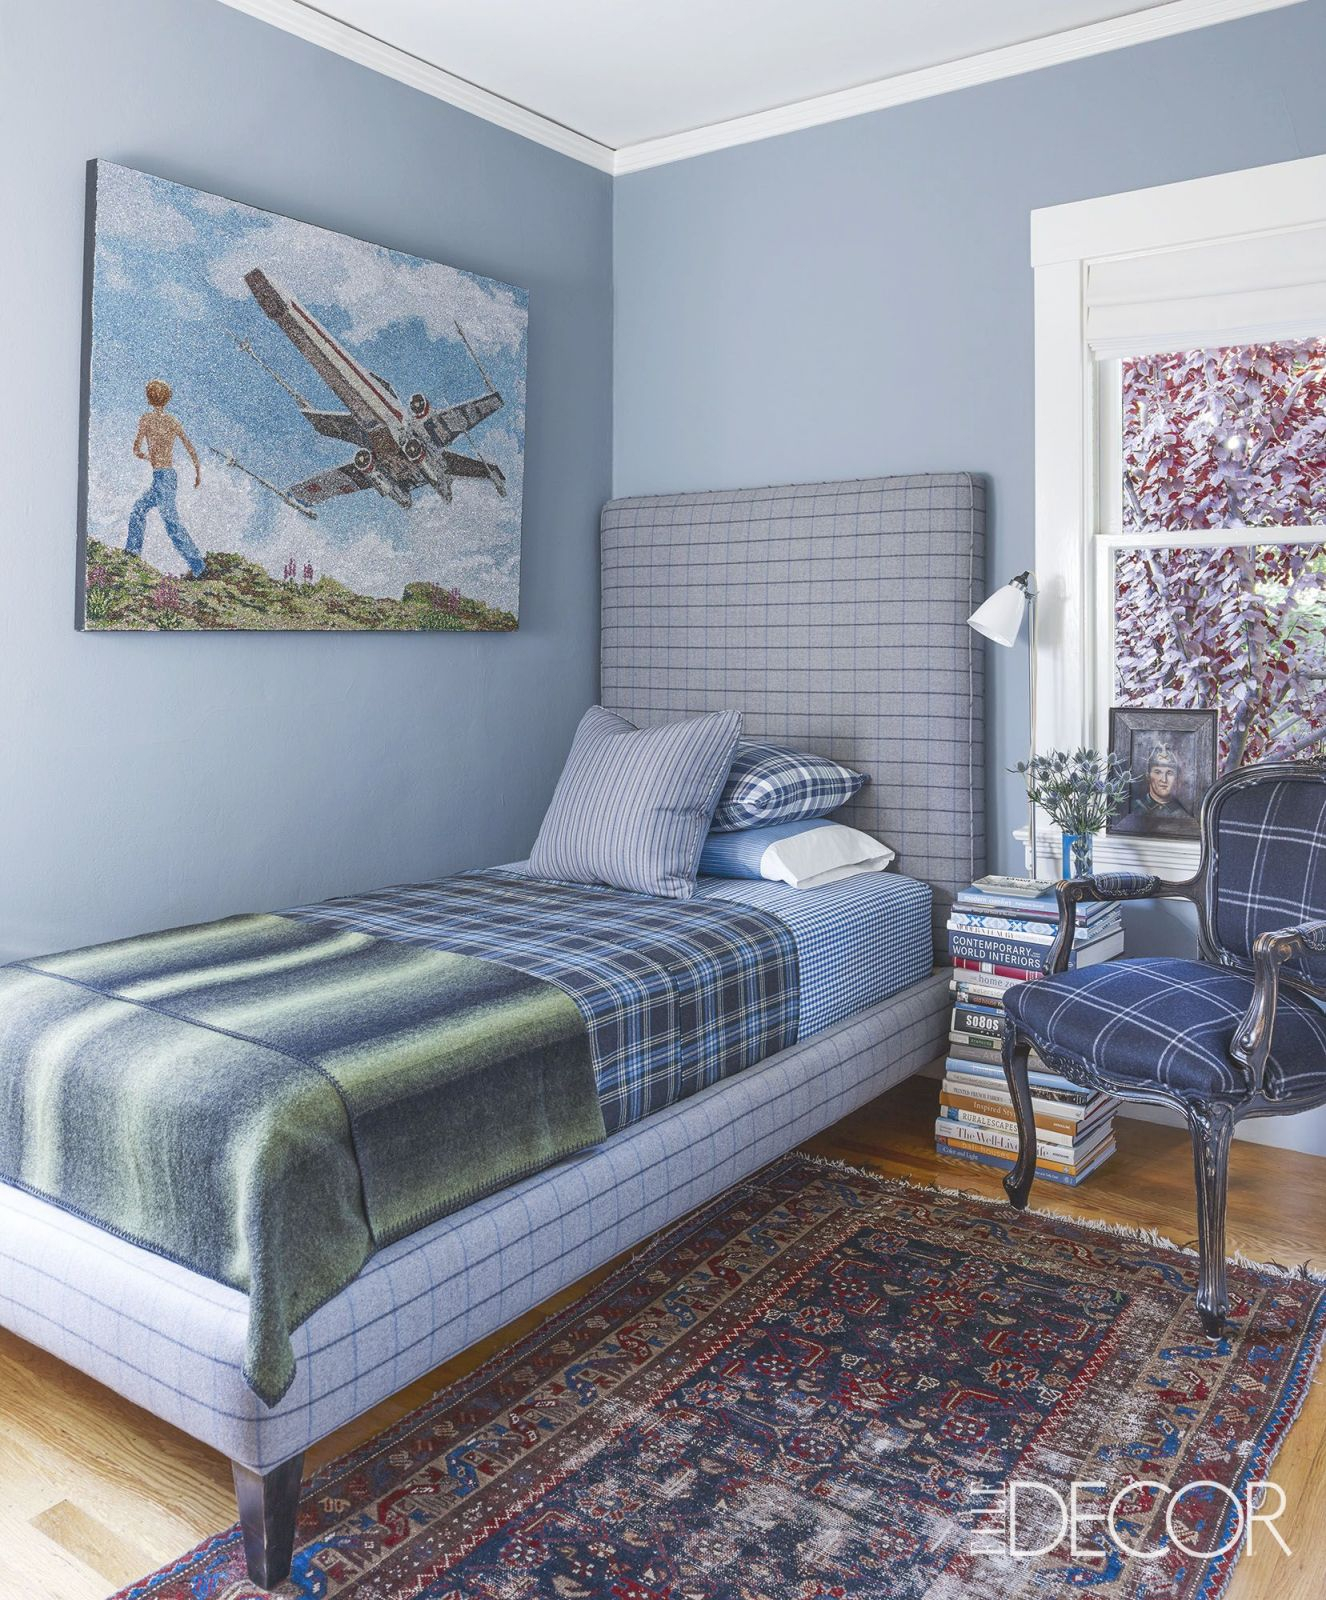 55 Small Bedroom Design Ideas – Decorating Tips For Small throughout Best of Small Bedroom Decoration Ideas